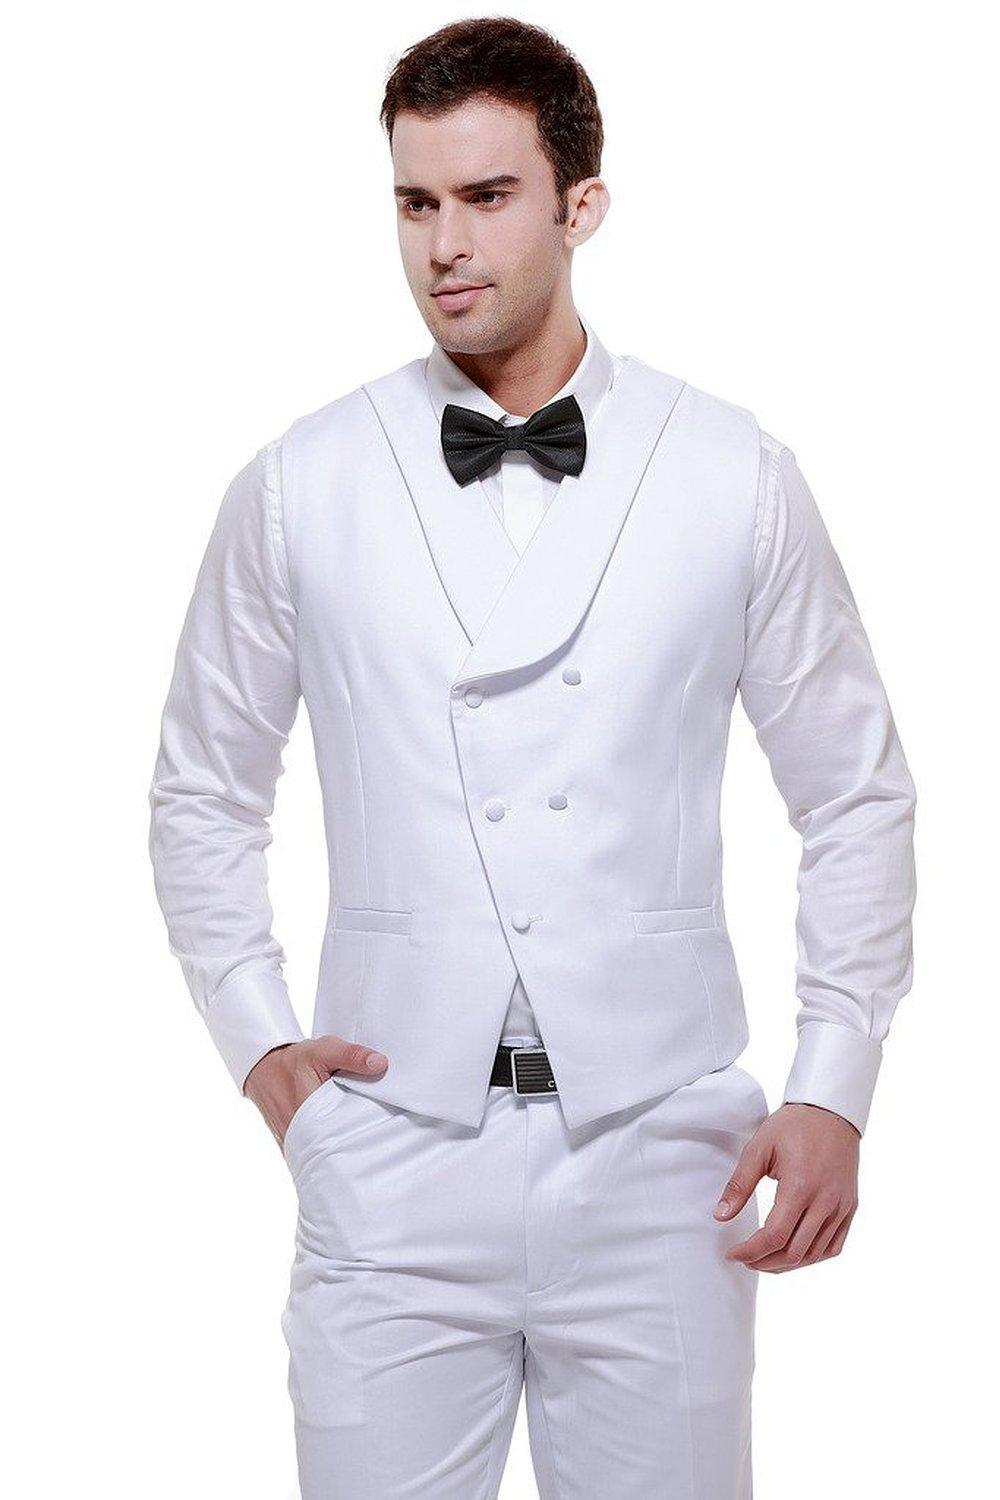 white suits for men hanayome menu0027s wedding dresses suits mens suits for men white 3-piece suit ayjijnp